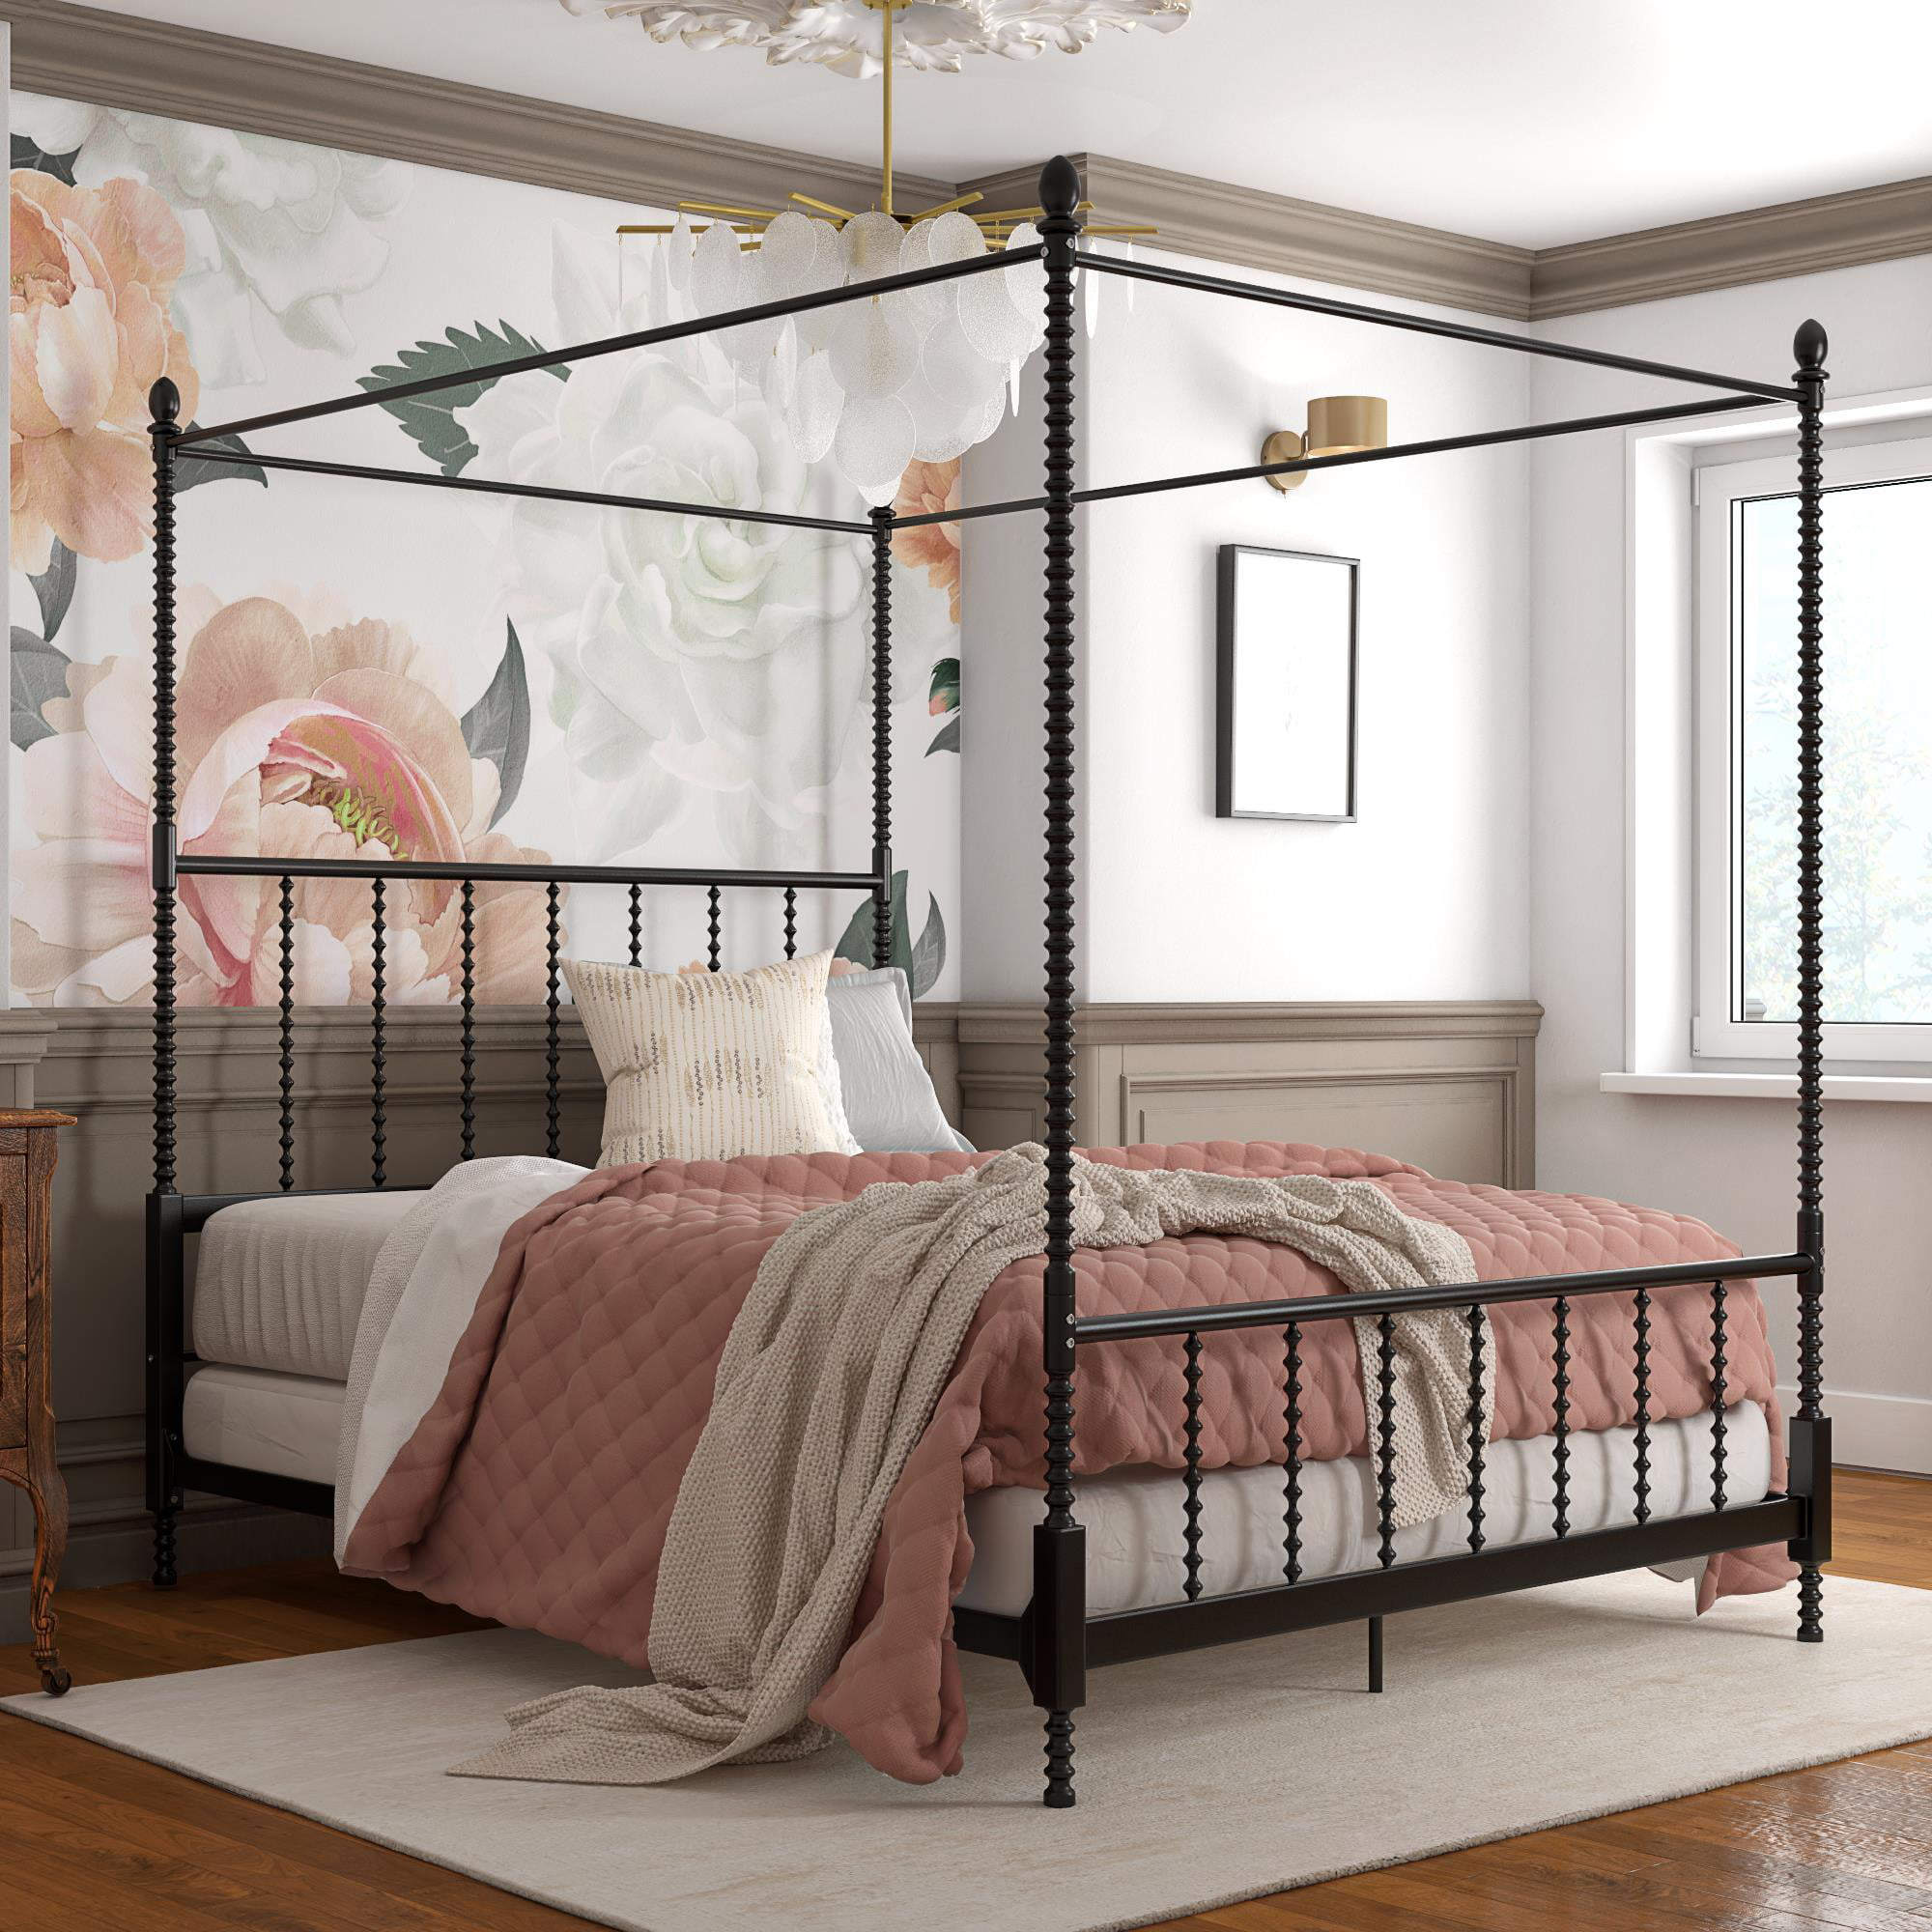 Dhp Anika Metal Canopy Bed Queen Size Frame Bedroom Furniture White Walmart Com Walmart Com